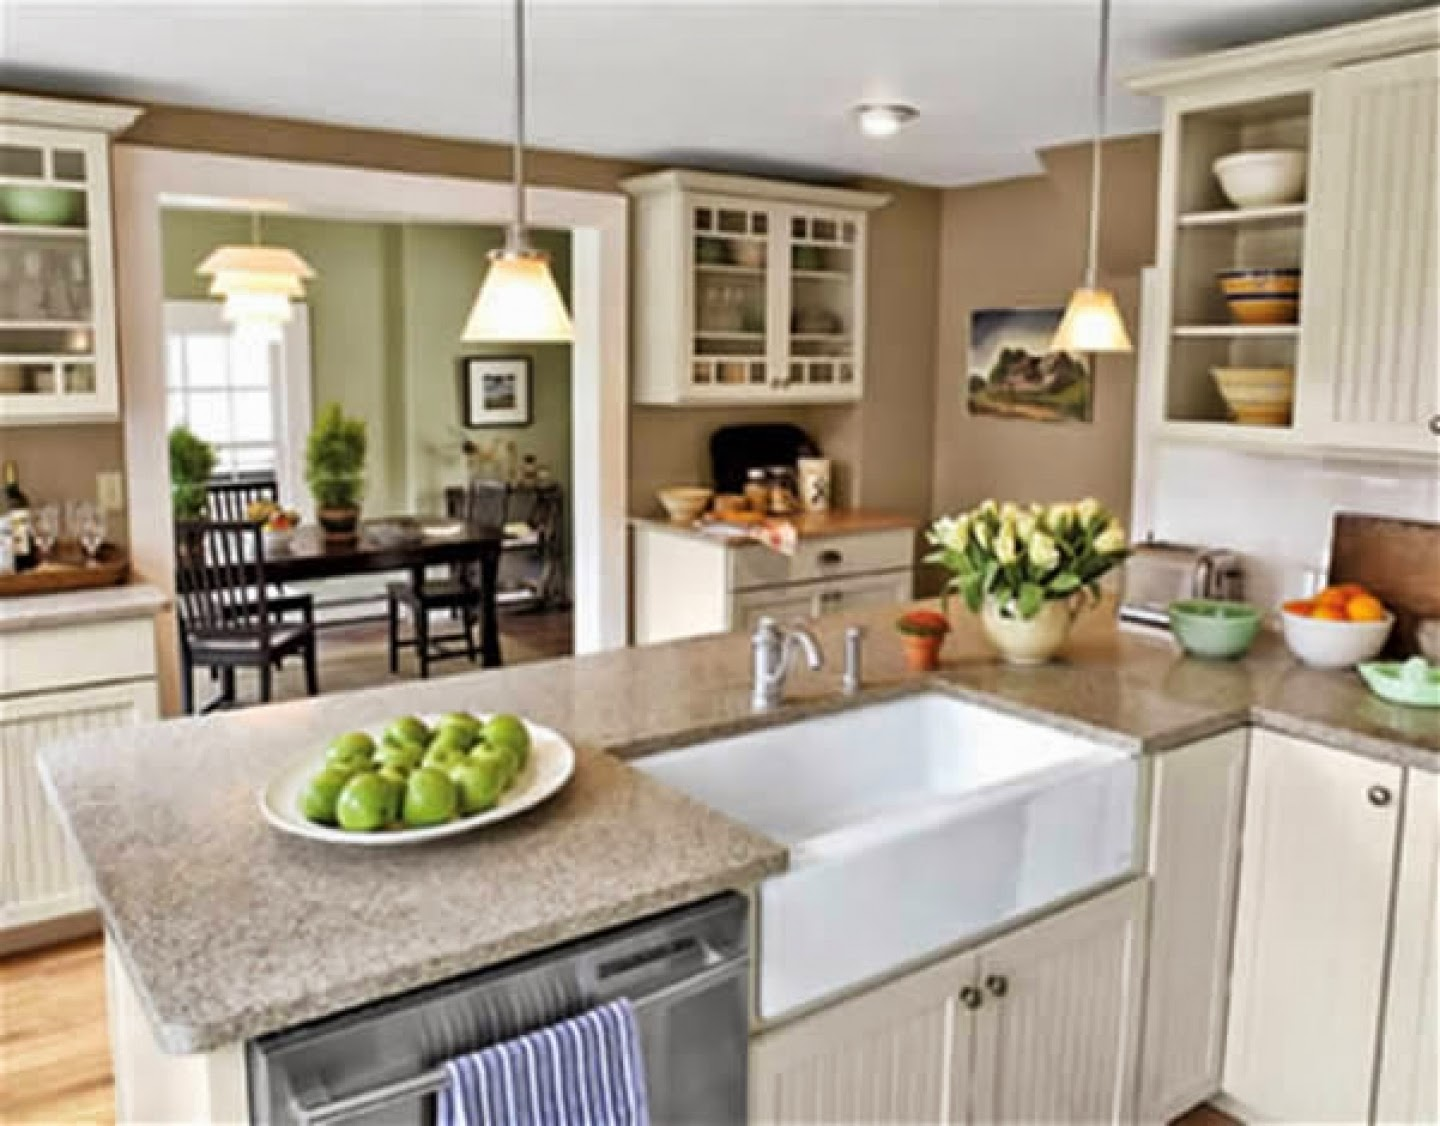 Kitchen Design Ideas Small Area kitchen design for small areas